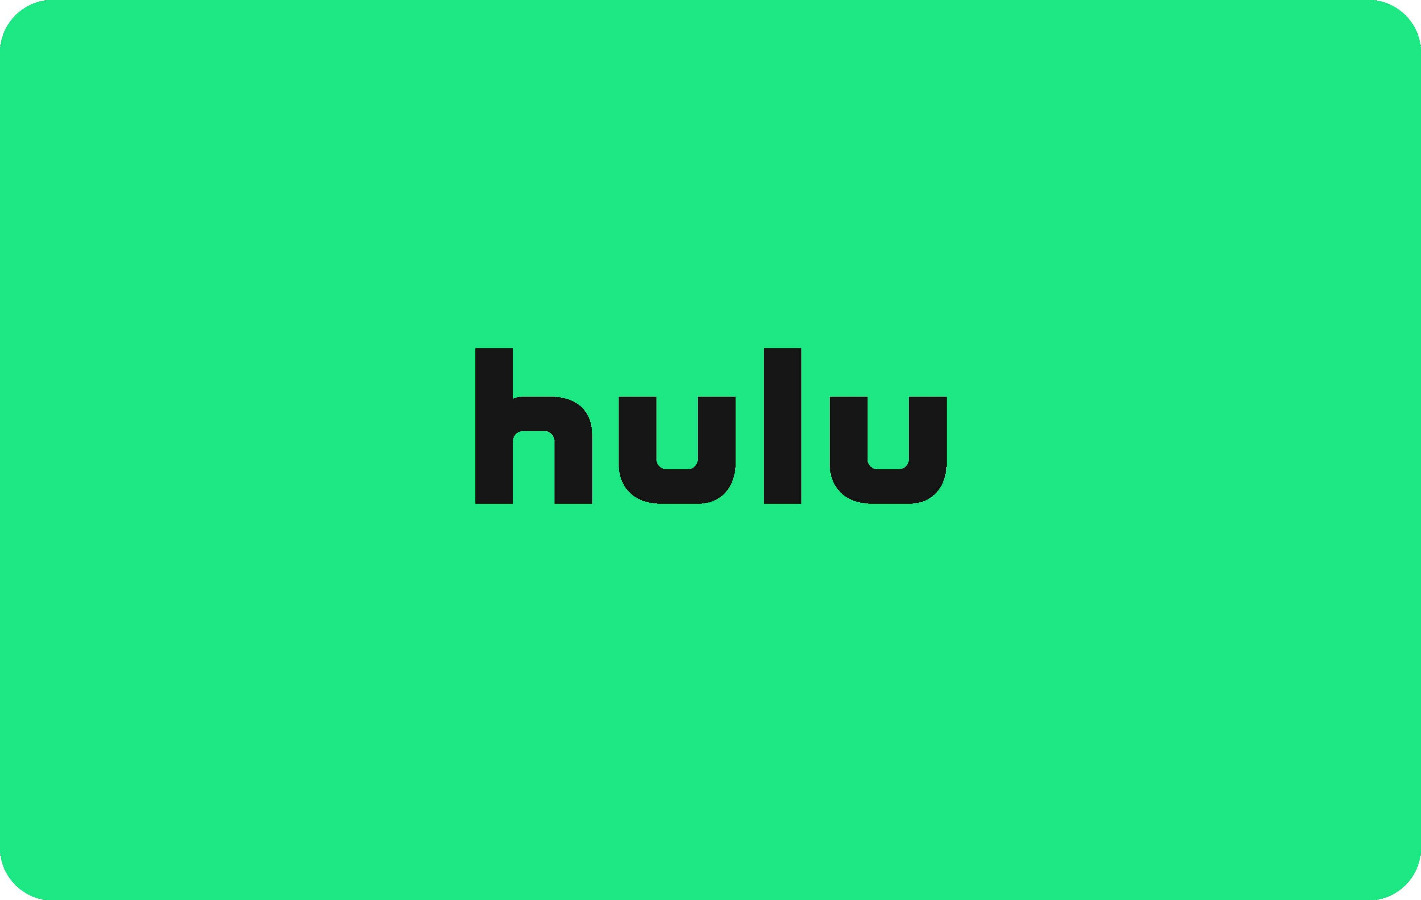 2 Hulu ACCOUNTS